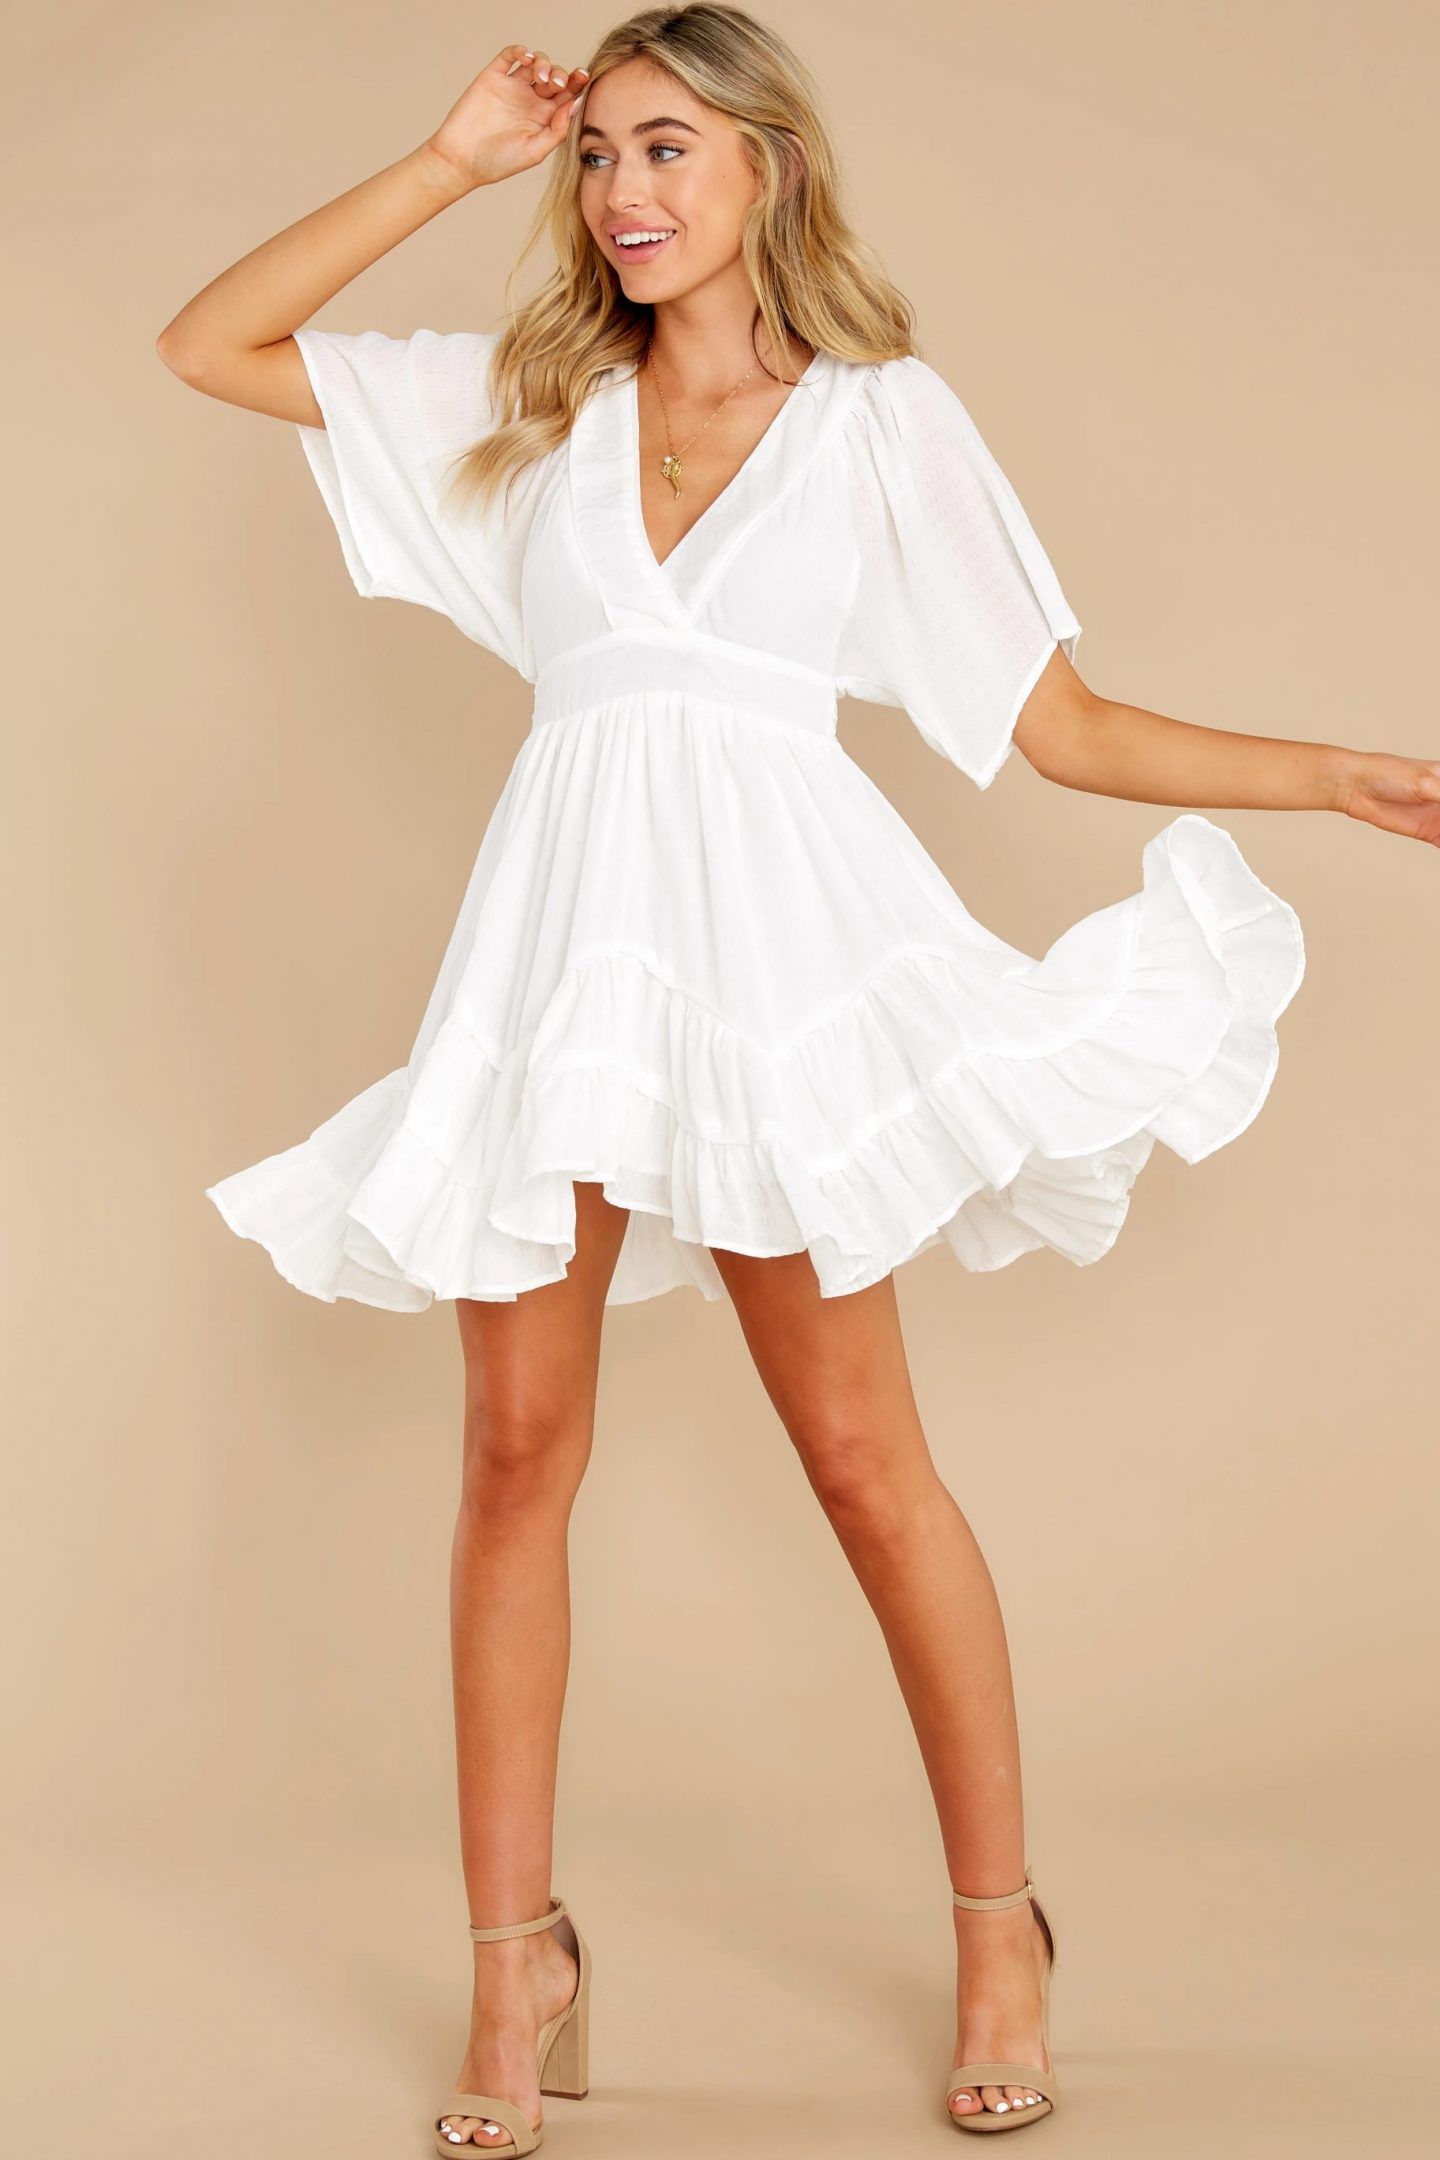 Casual summer dress with ruffles and sleeves